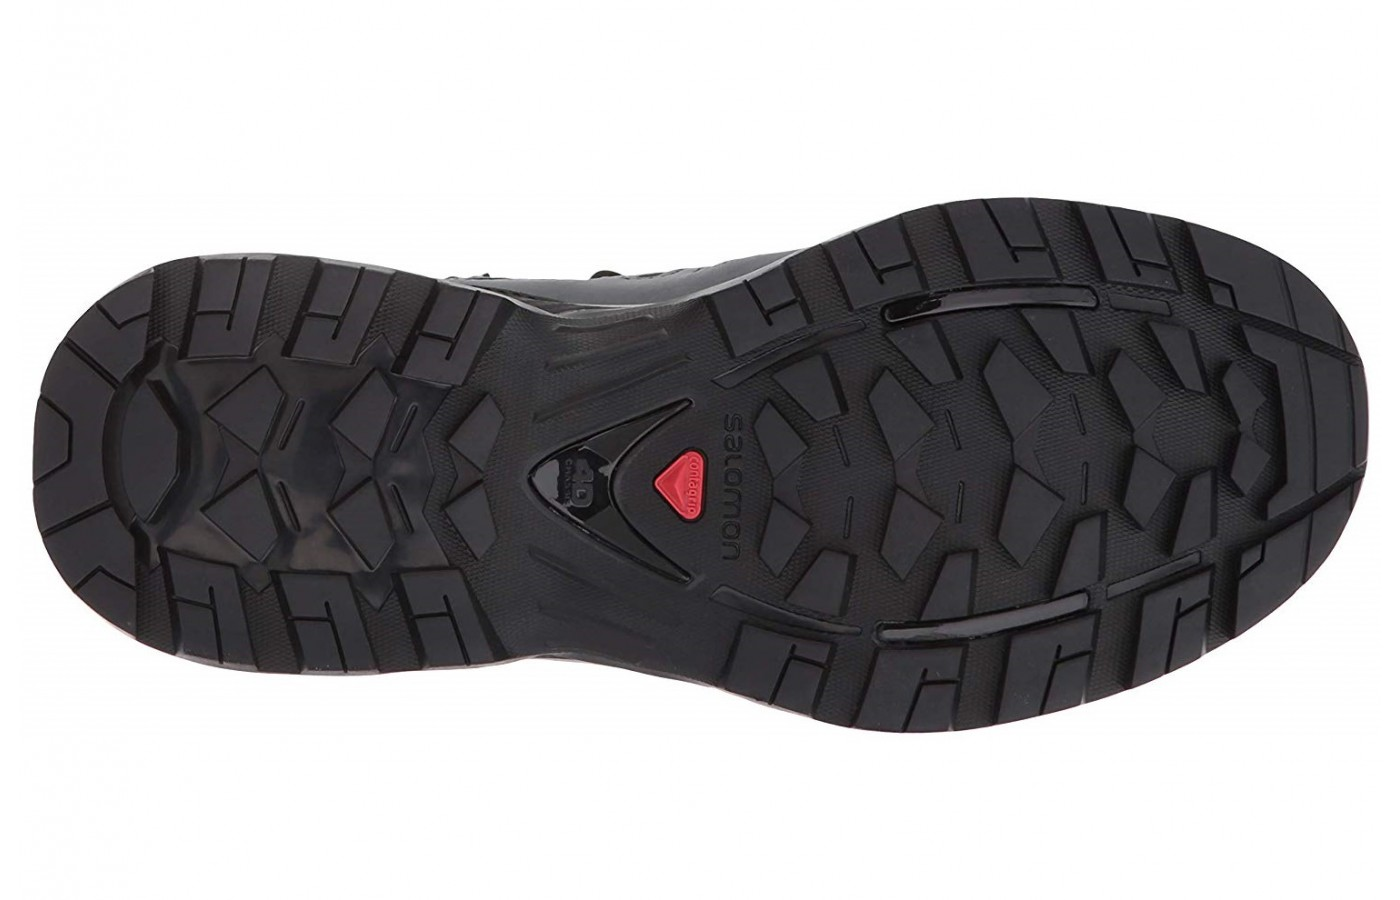 The Salomon Quest 4D 3 GTX also offers 3 GTX with a new lug design for better grip.